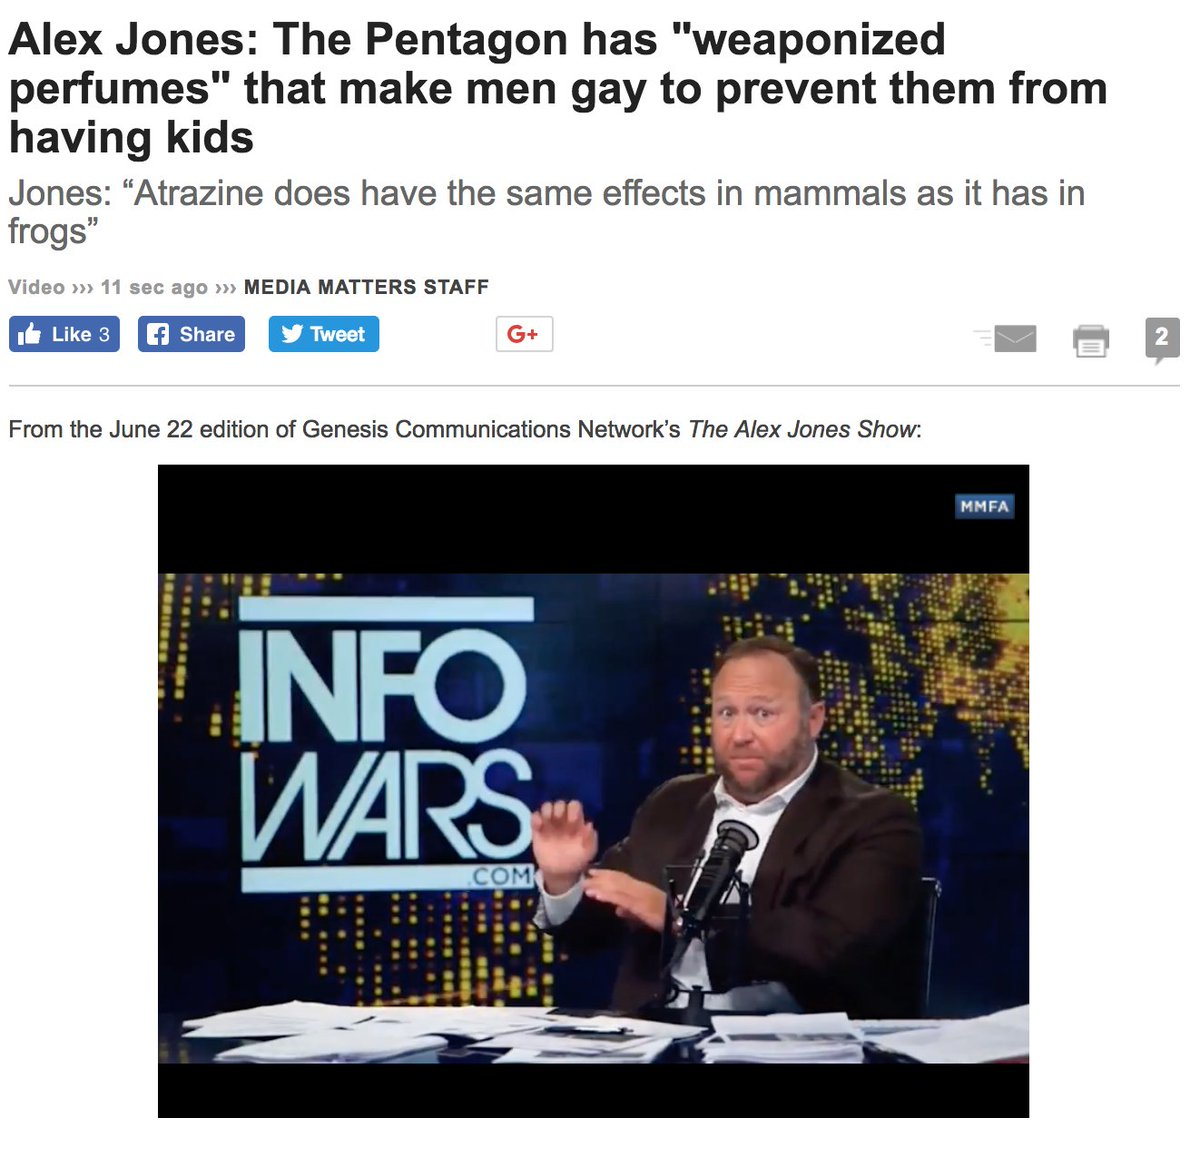 why aren't more people talking about Alex Jones' facial hair?